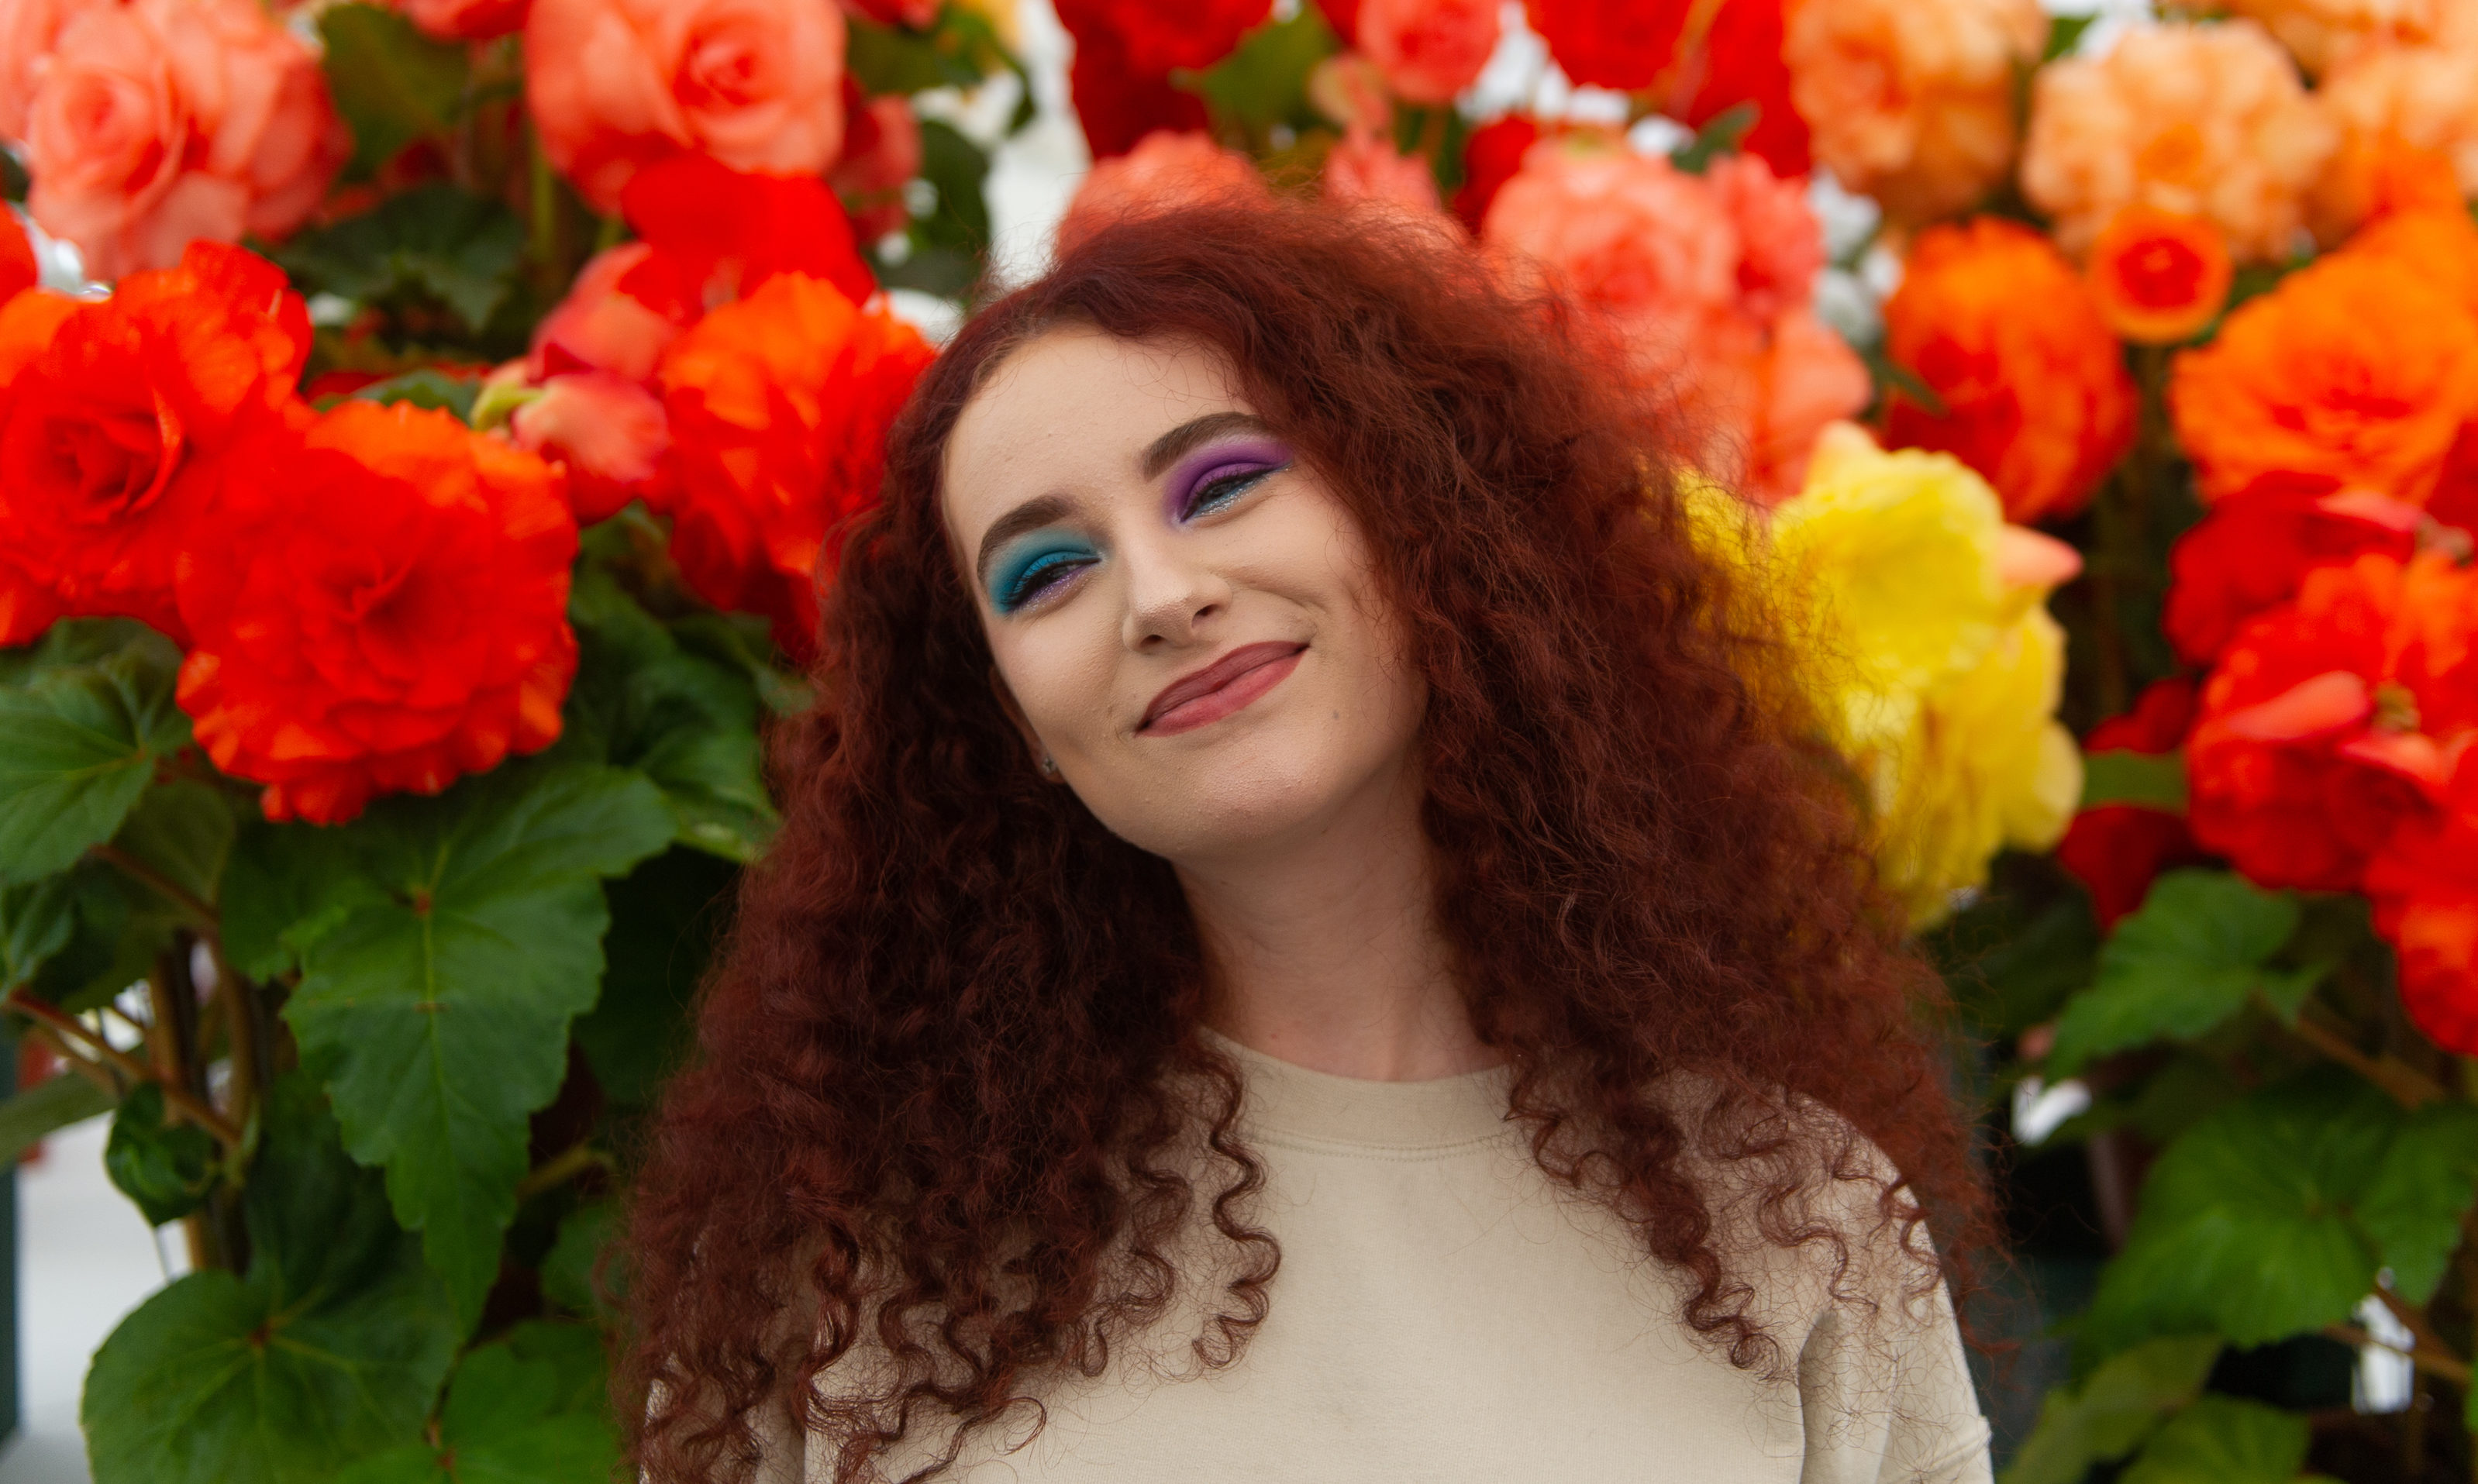 Jodie Milne, 17, at the 2018 Dundee Flower and Food Festival.